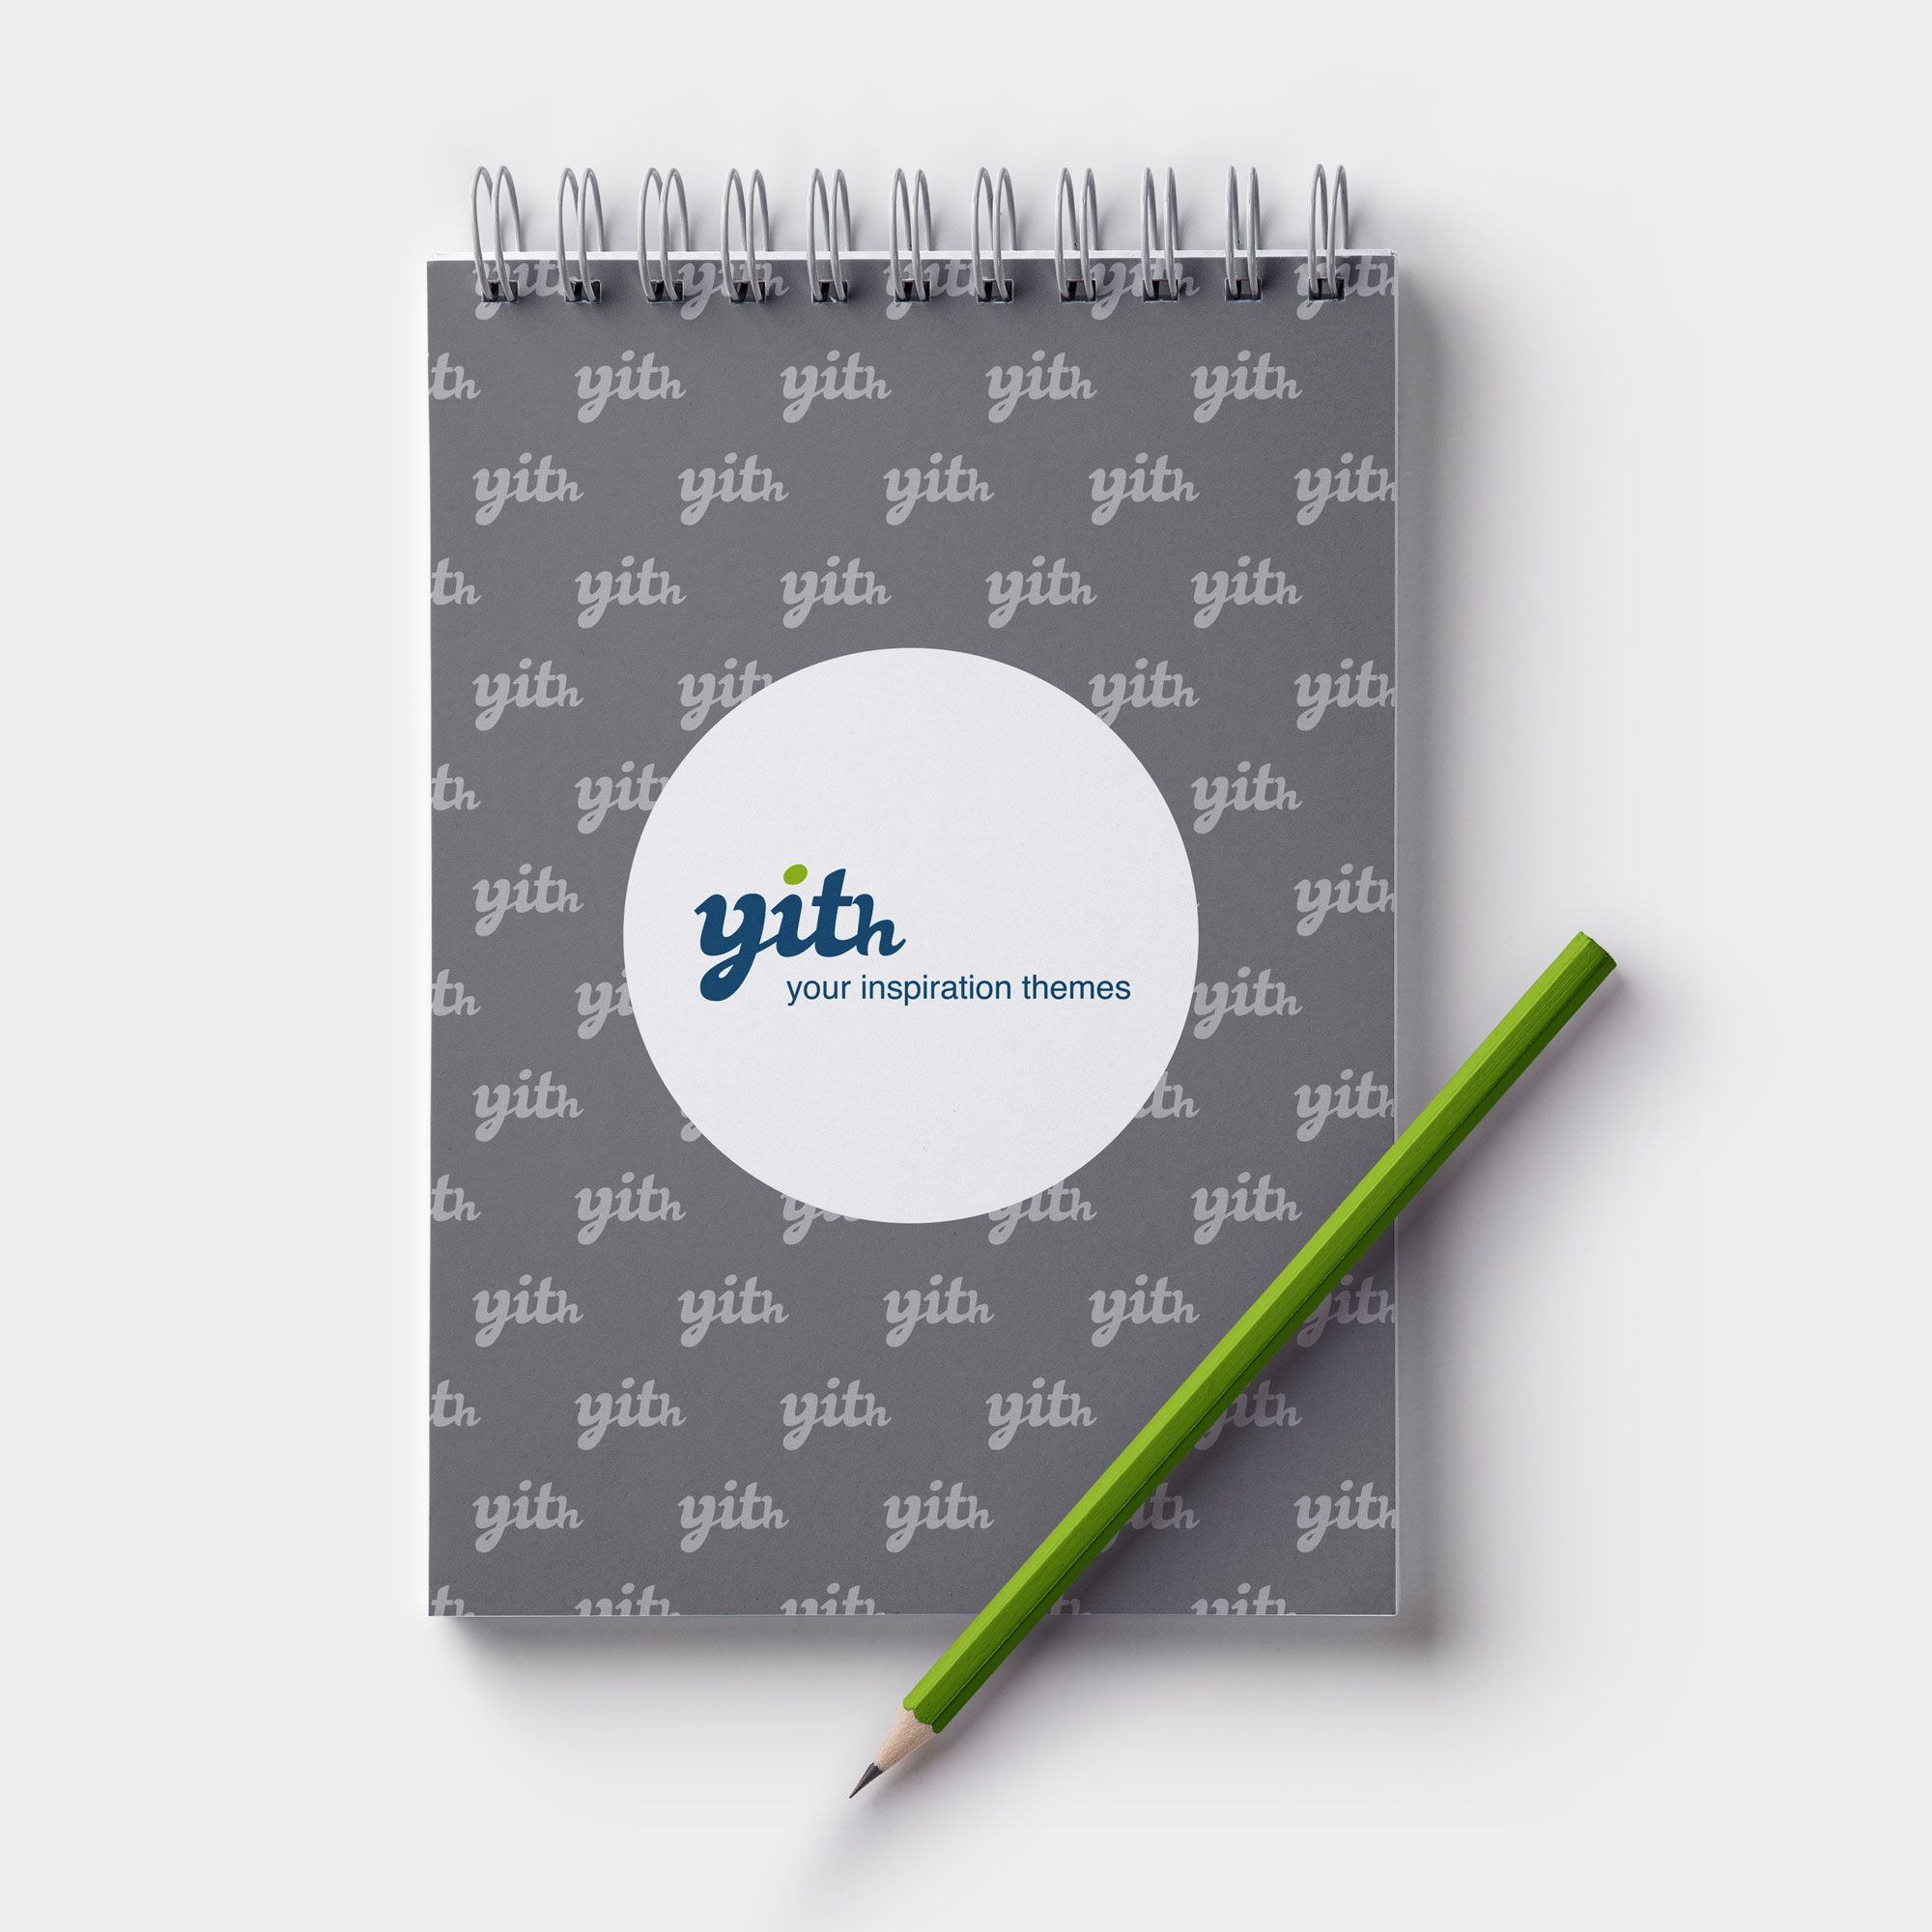 YITH Notebook - Grey